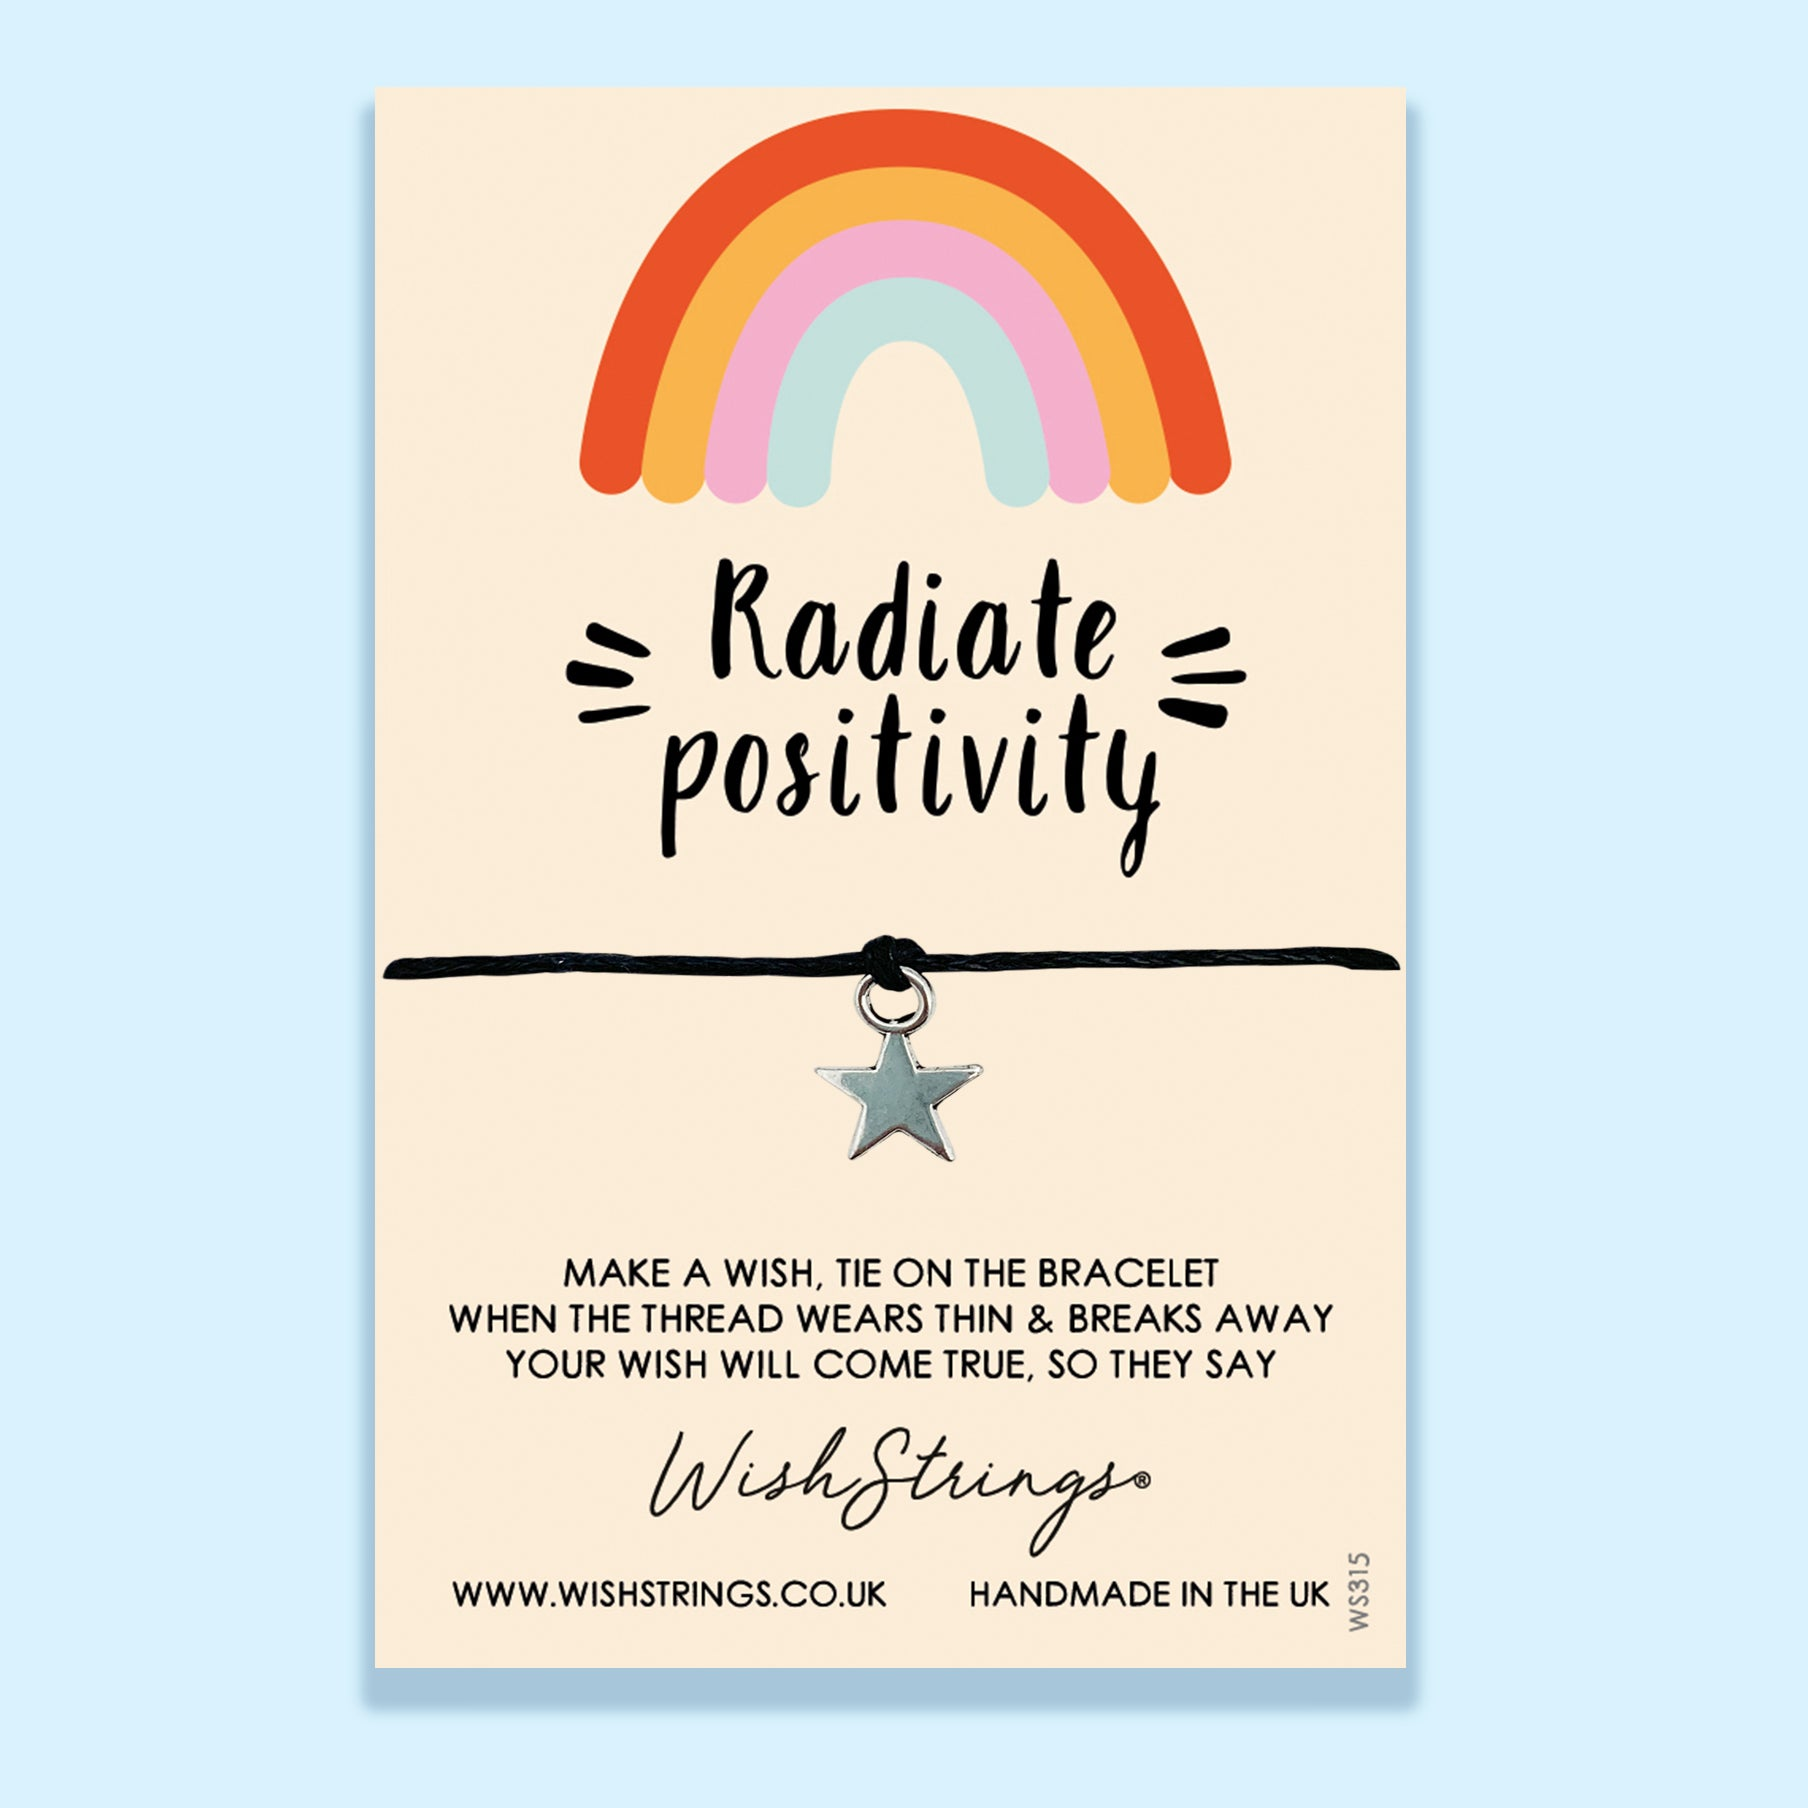 RADIATE POSITIVITY - WishStrings - WS315